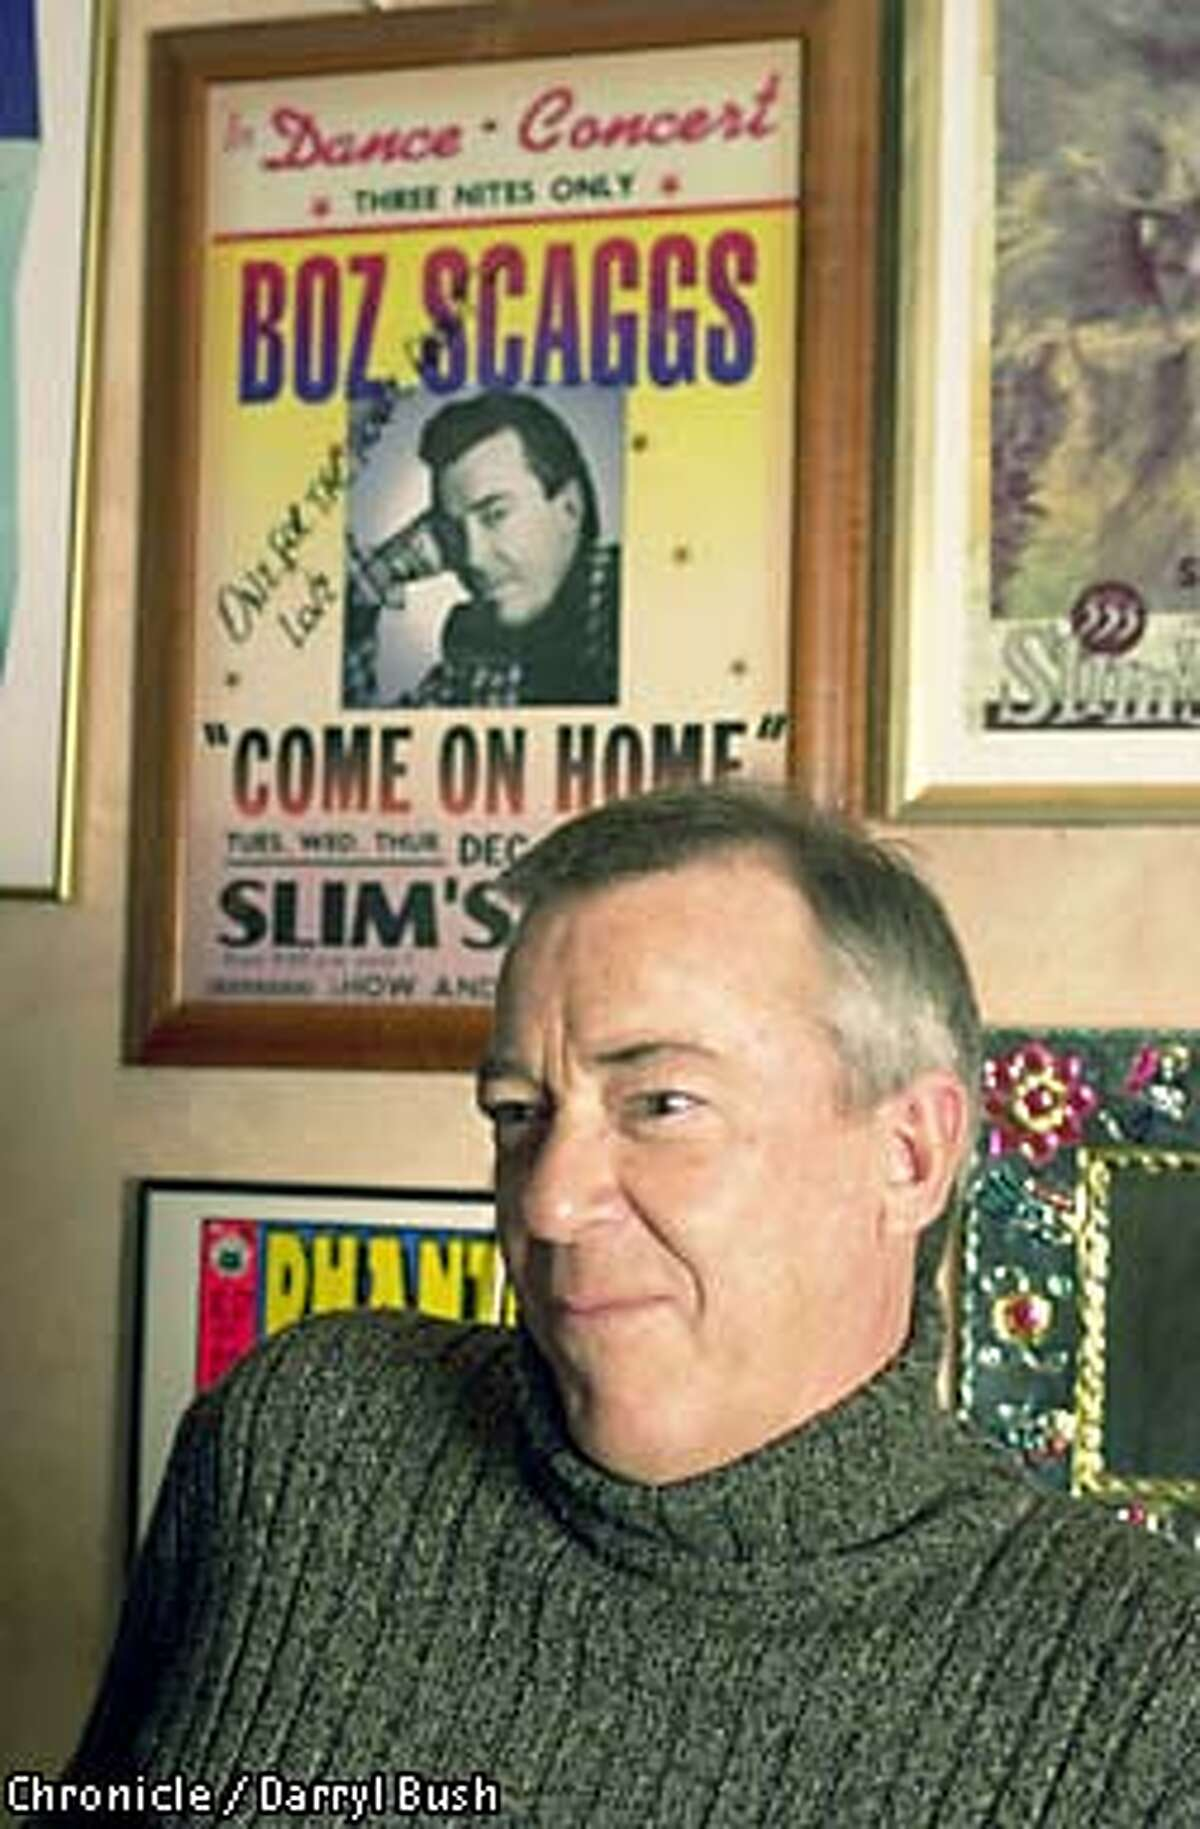 Boz Scaggs with a poster of concert he played in the background, inside the basement office of Slim's nightclub in San Francisco. Chronicle Photo by Darryl Bush